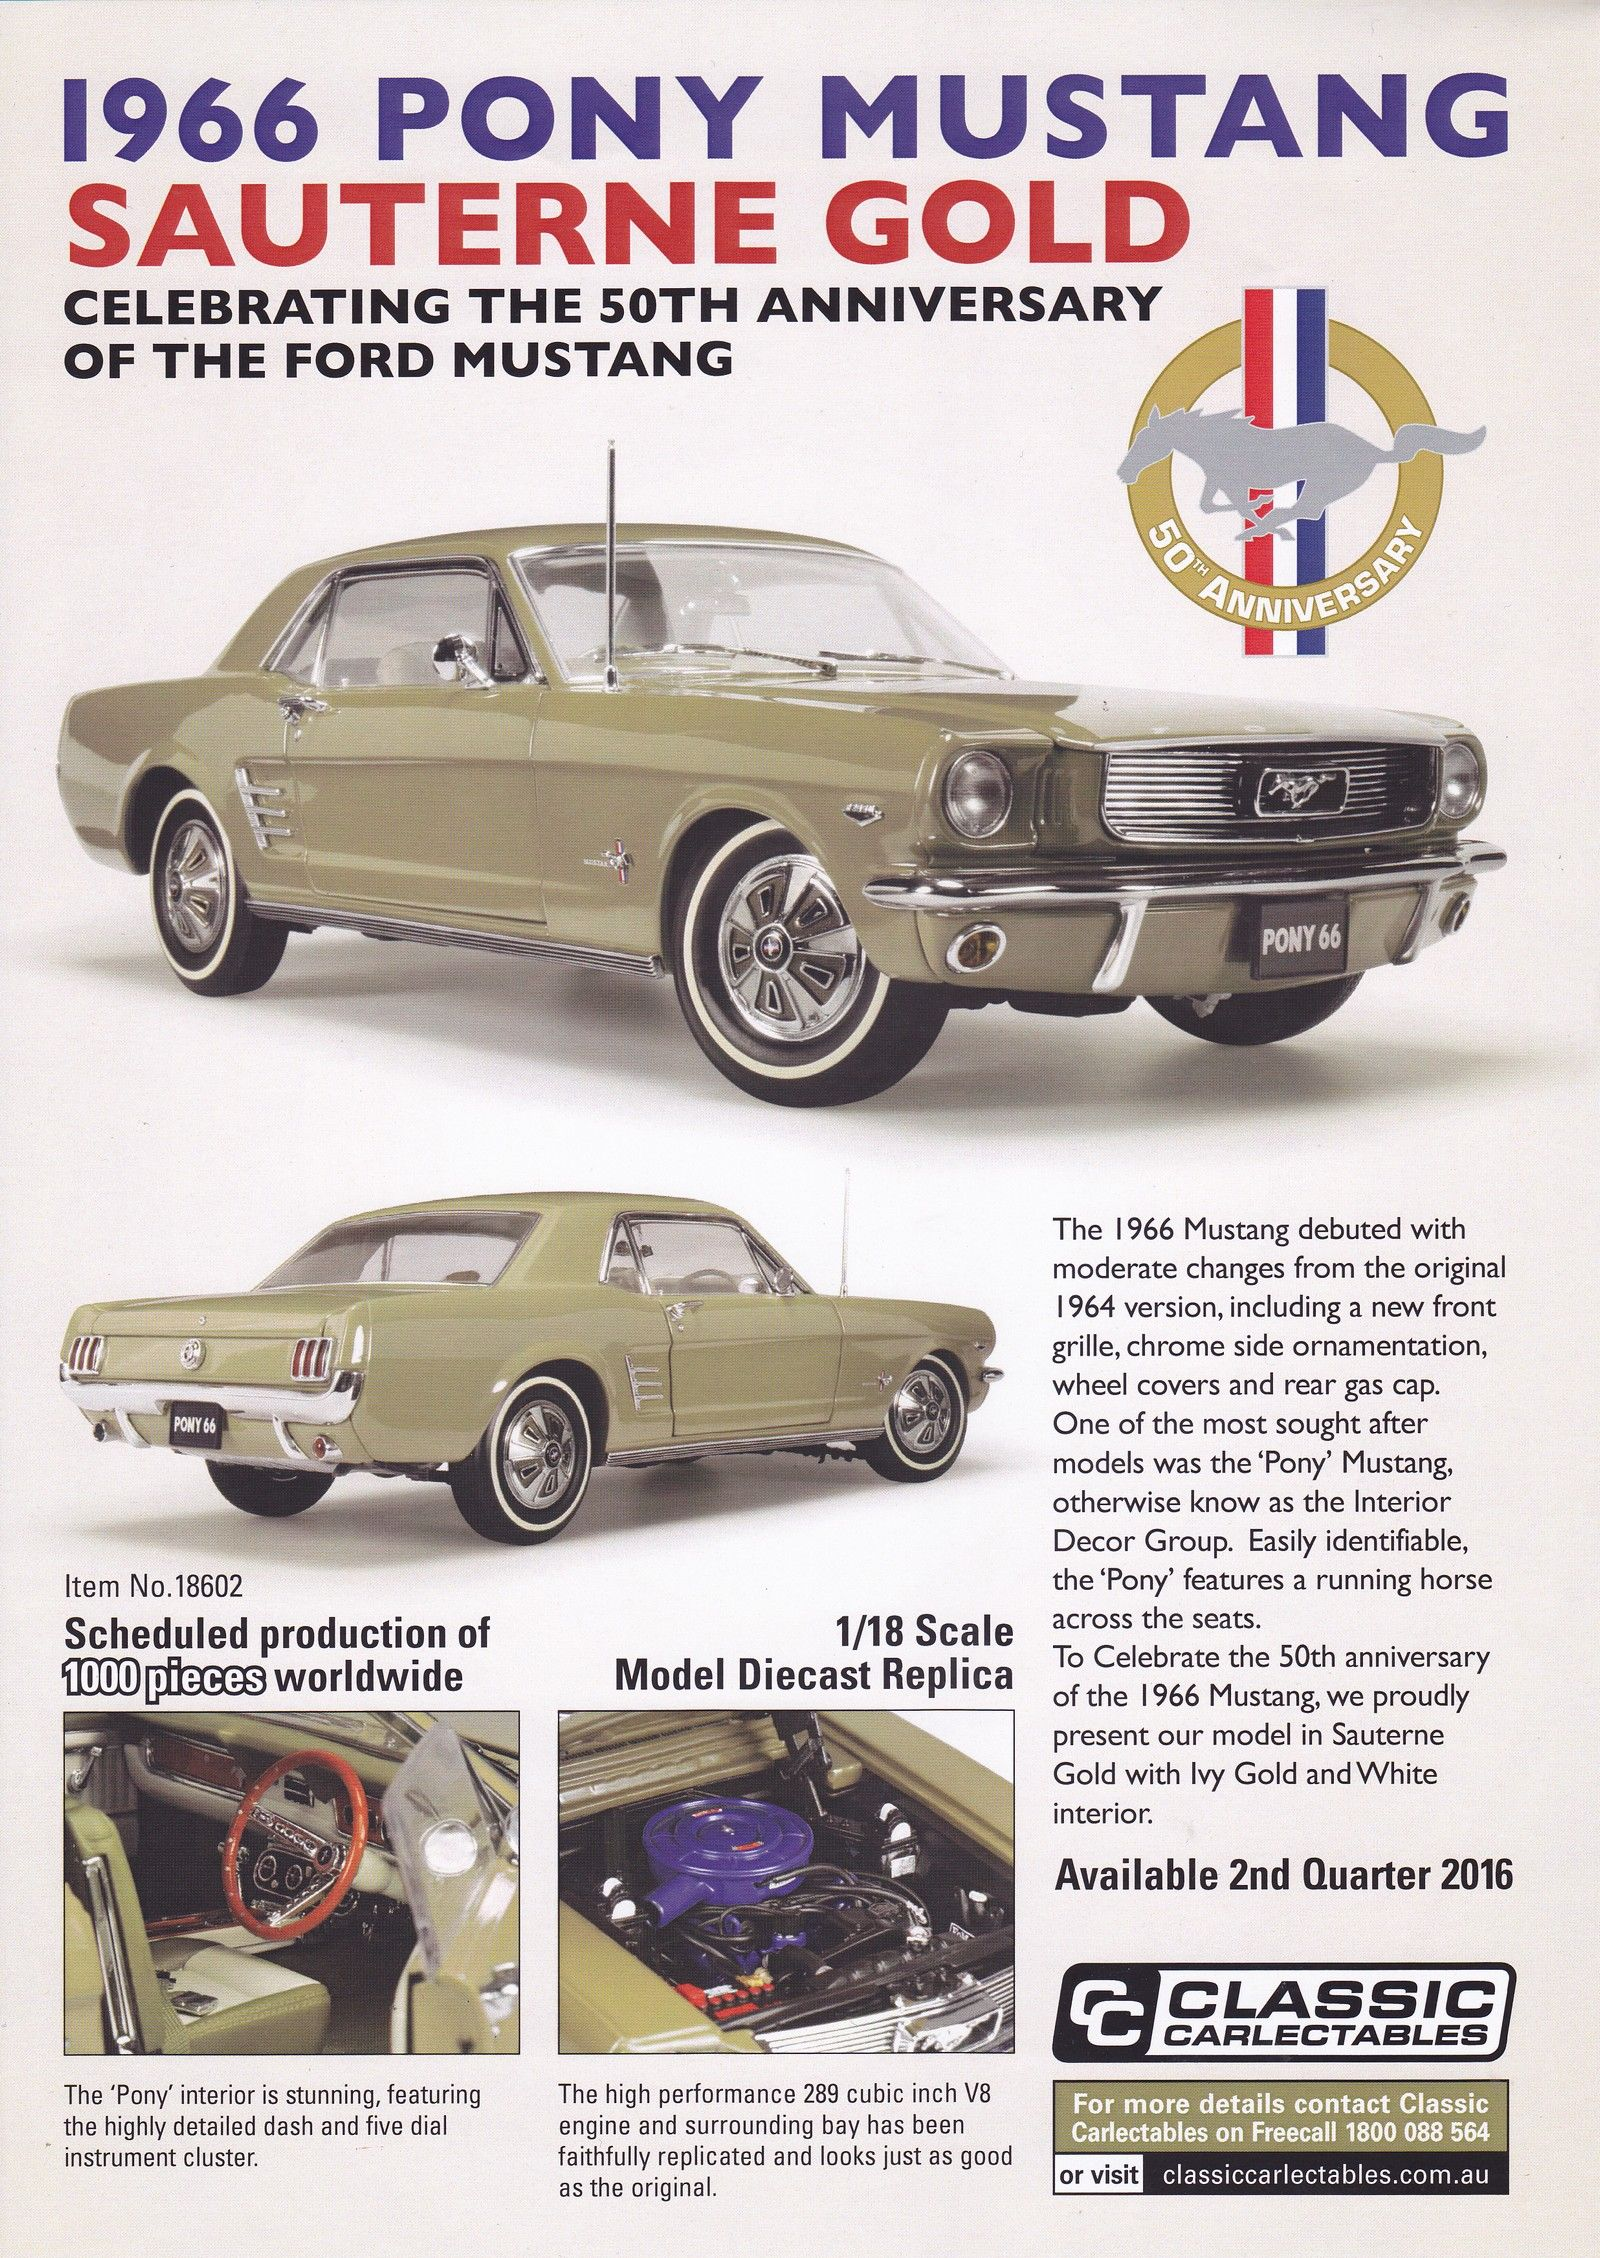 1966 Ford Mustang in Sauterne Gold. Model features